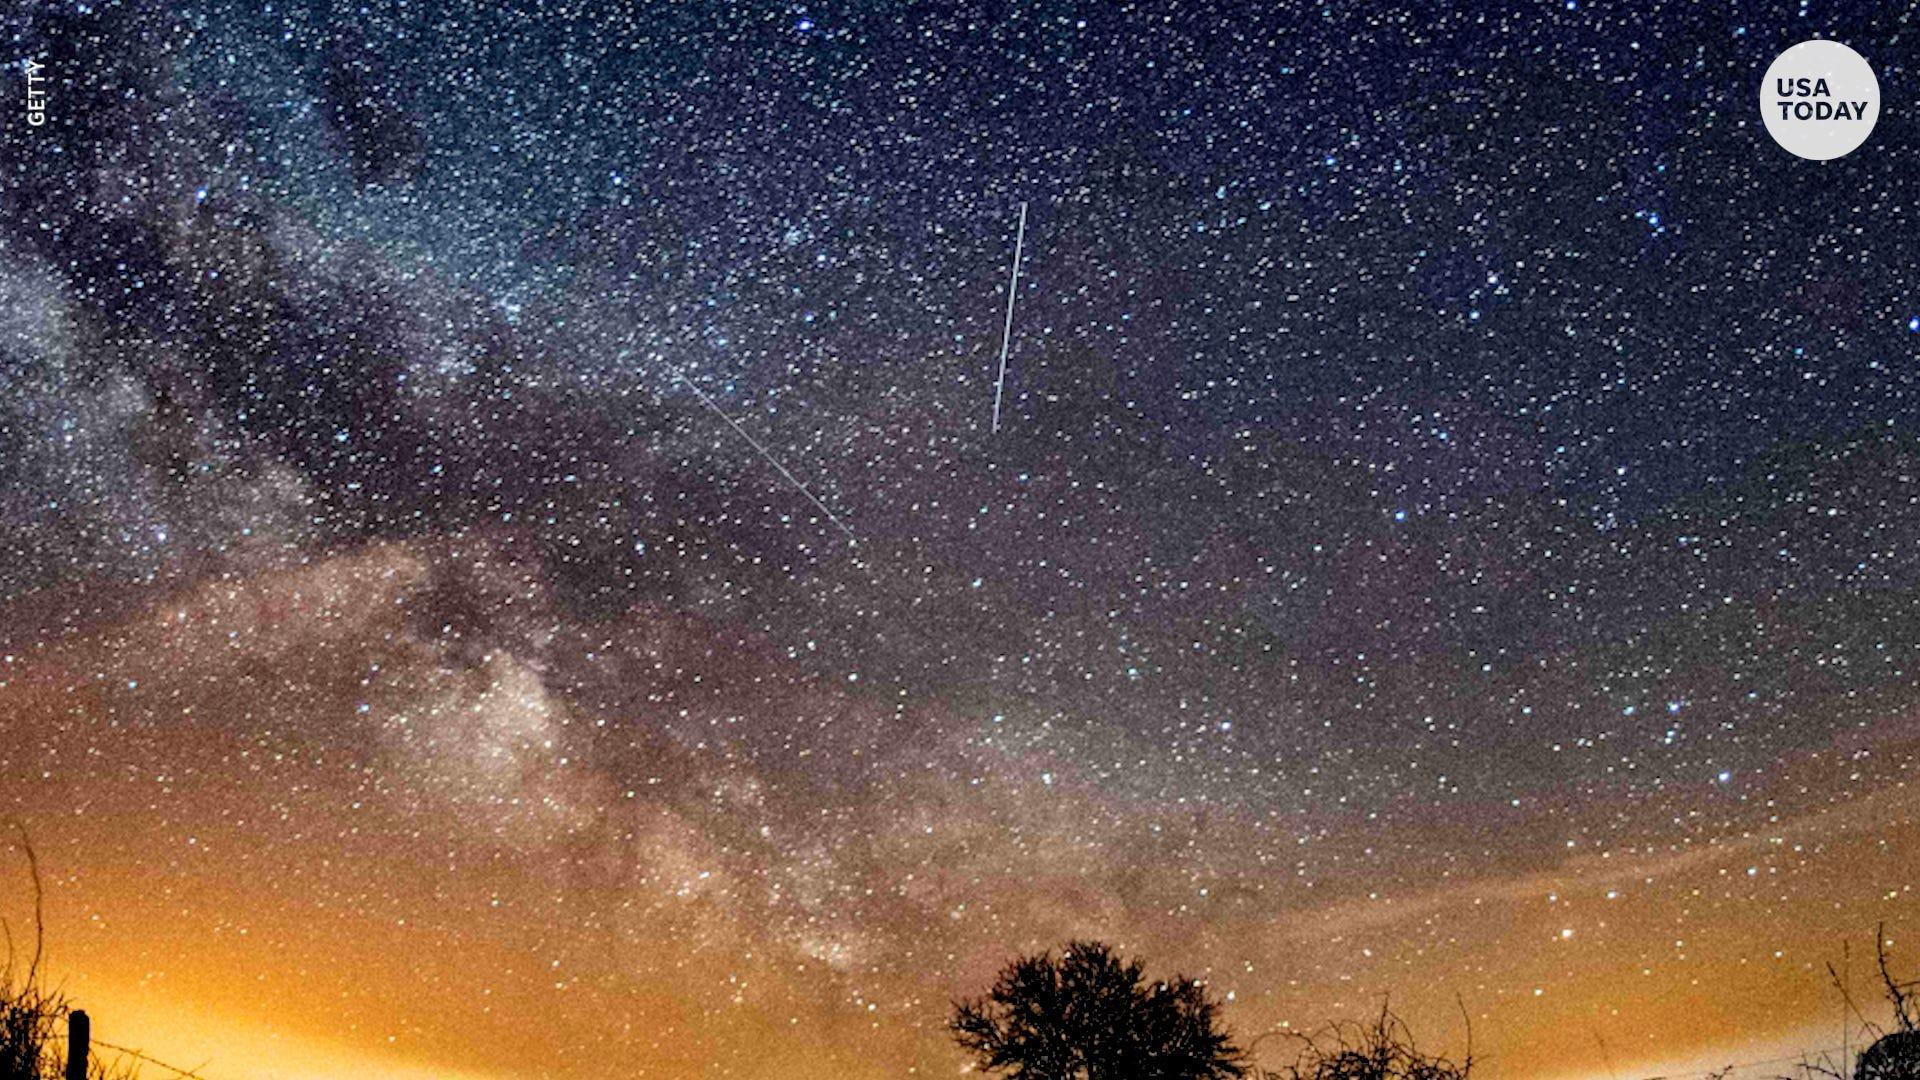 The Lyrid meteor shower will light up the sky this week and peak on Thursday. Here's how to watch these shooting stars.